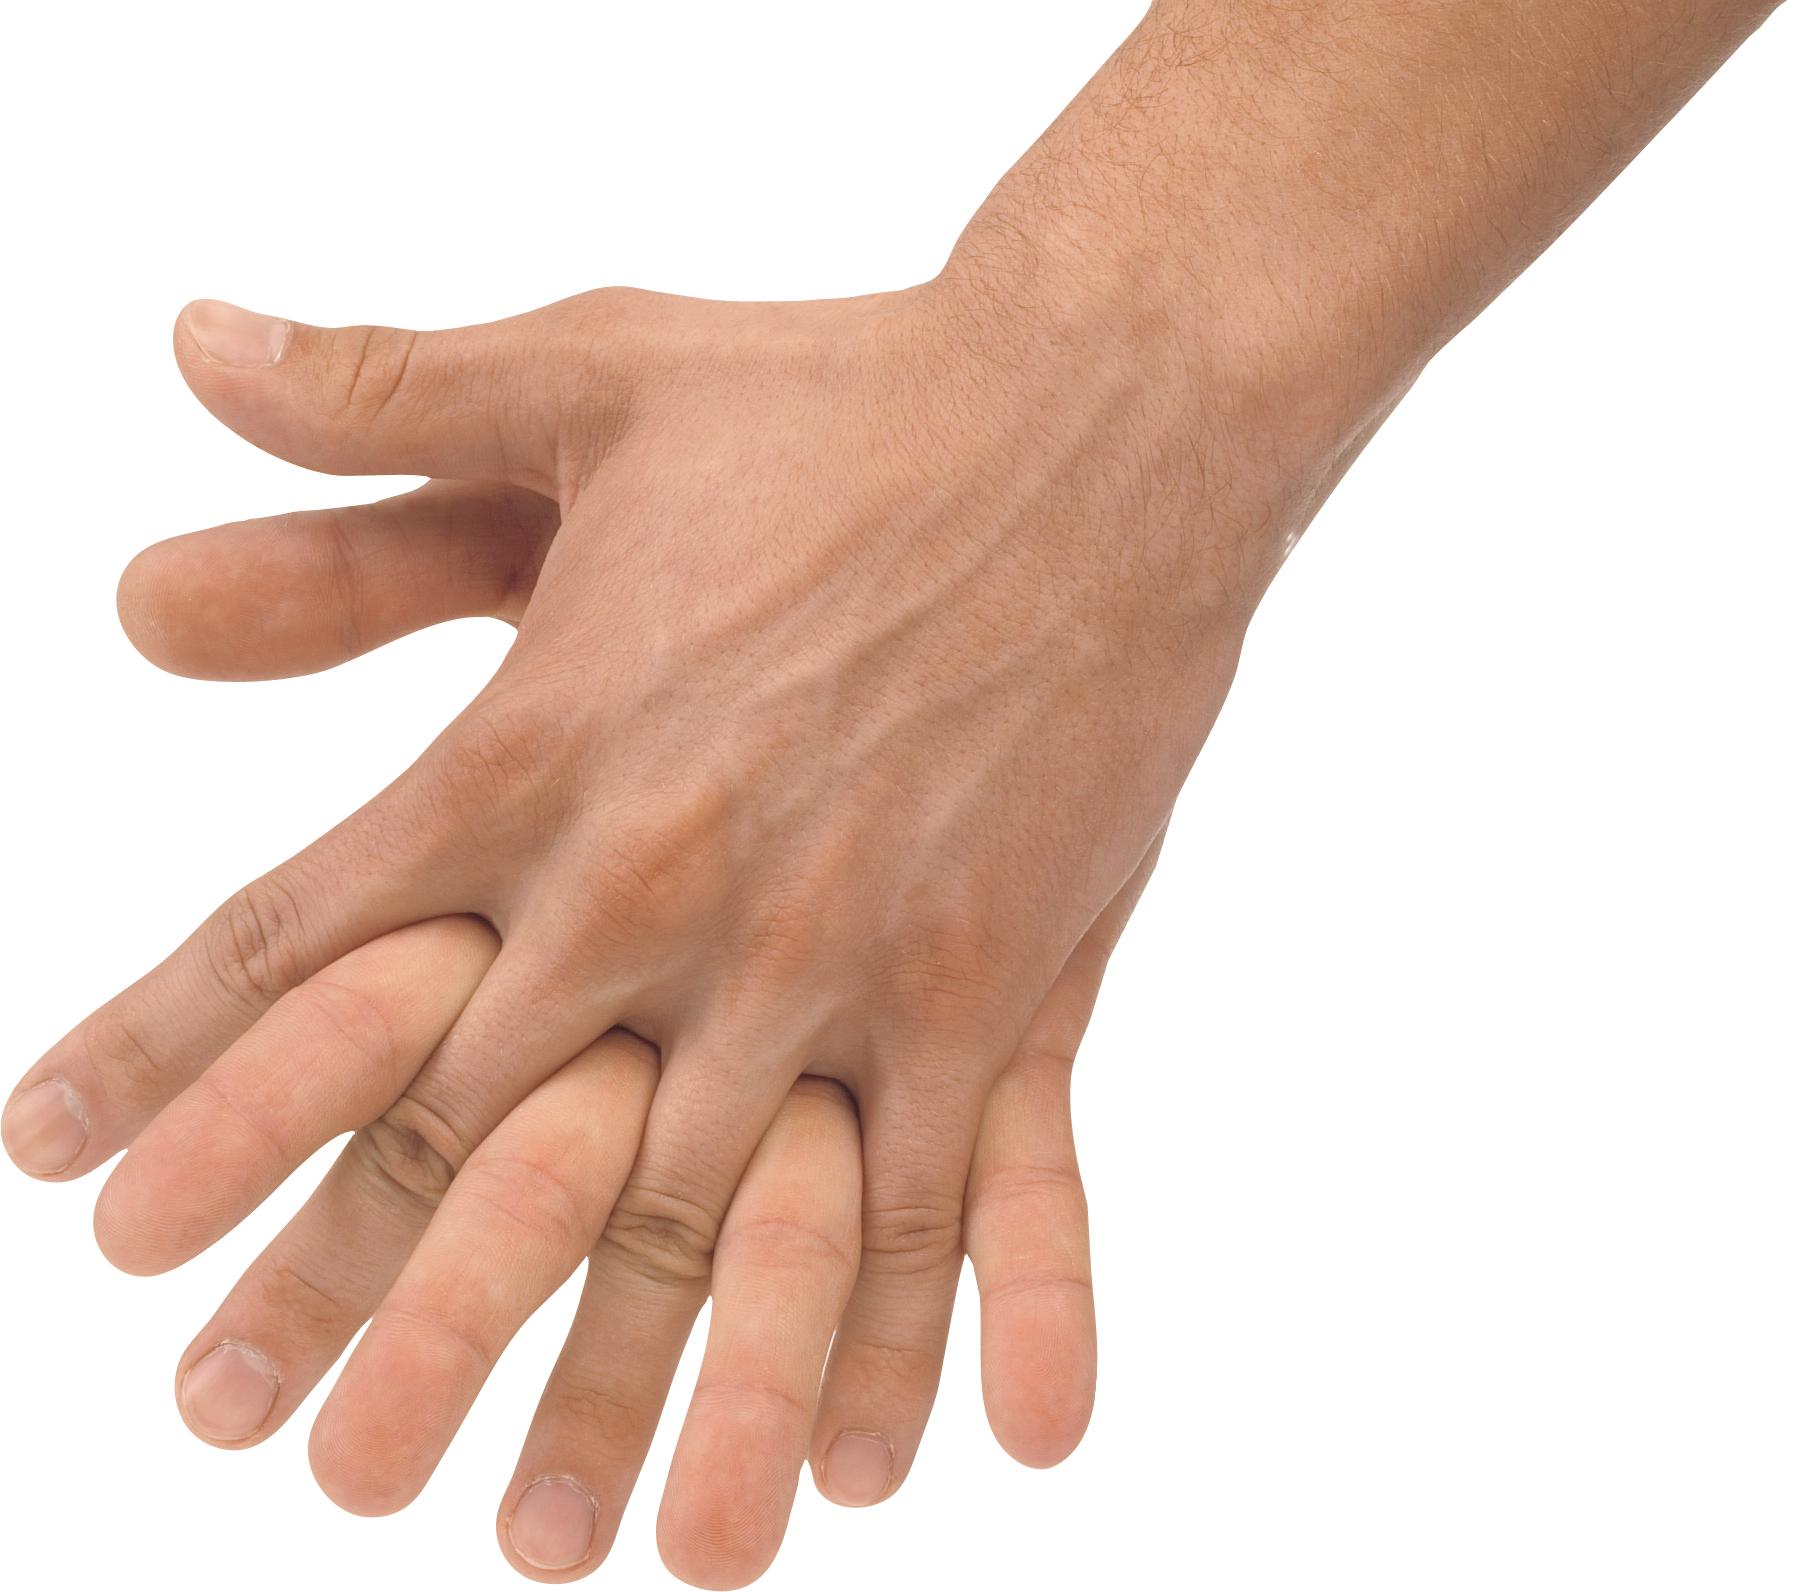 Hand knuckles png